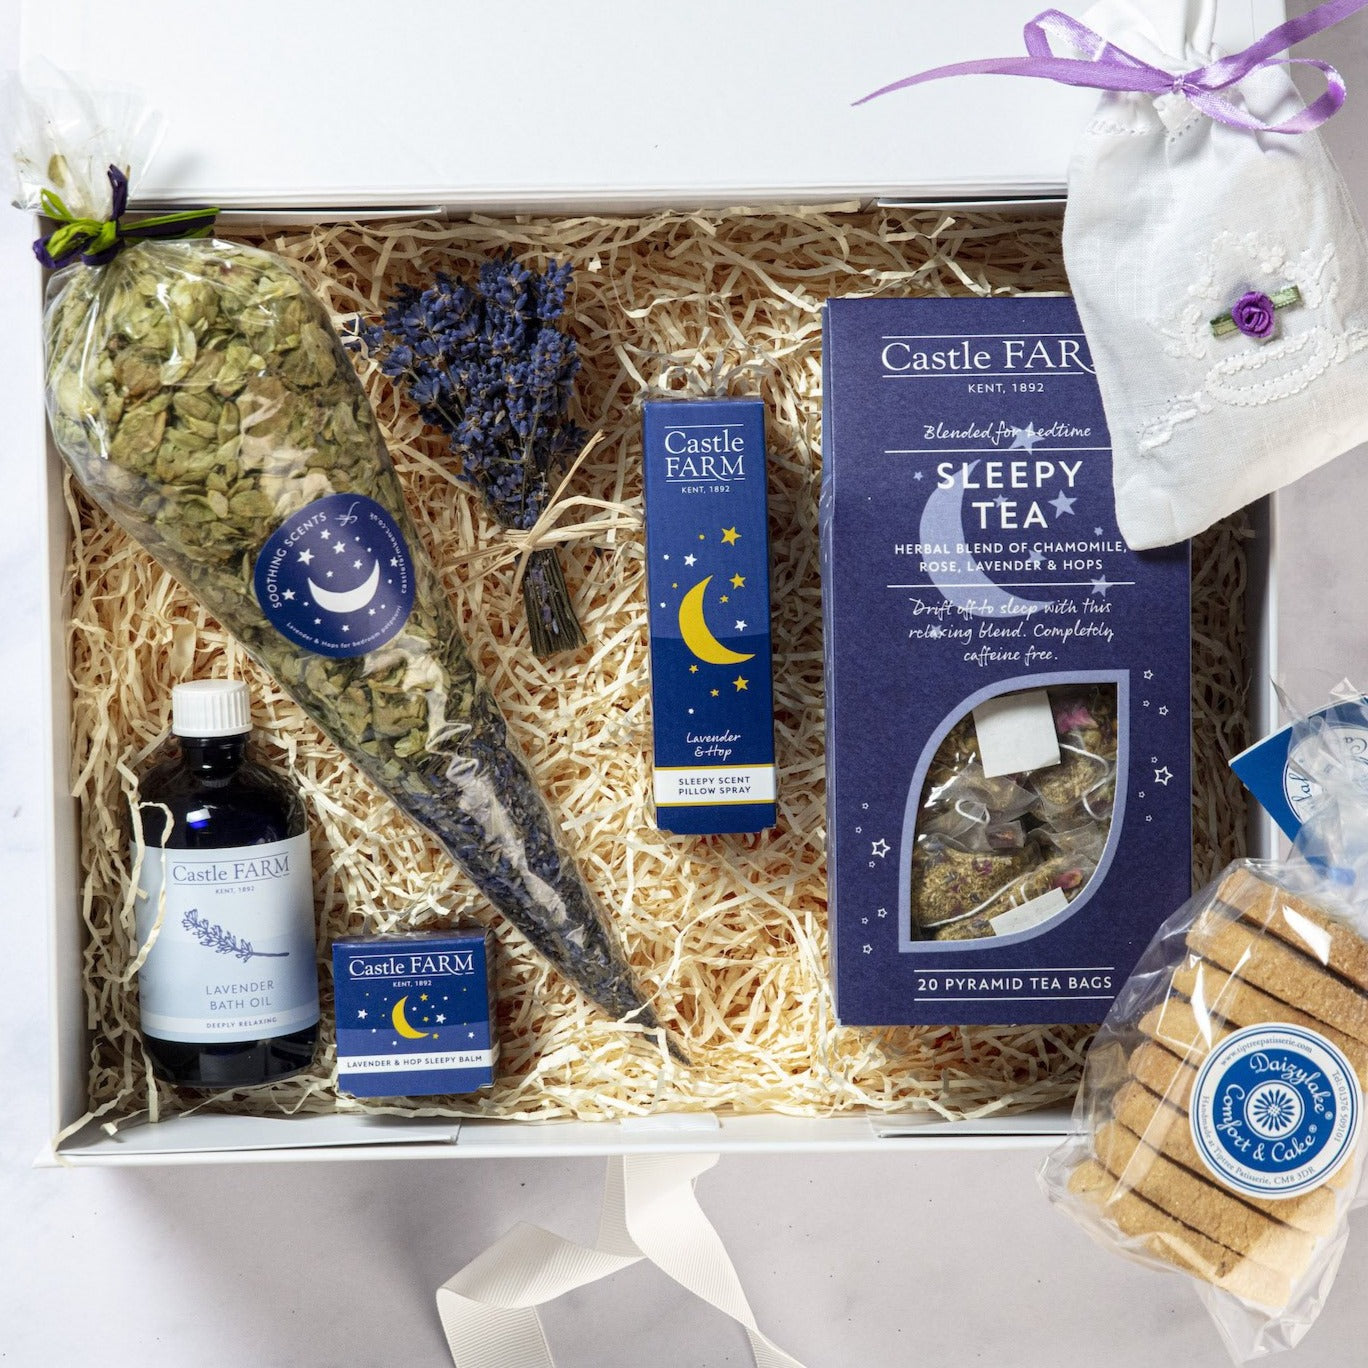 THE ULTIMATE LAVENDER SLEEP HAMPER